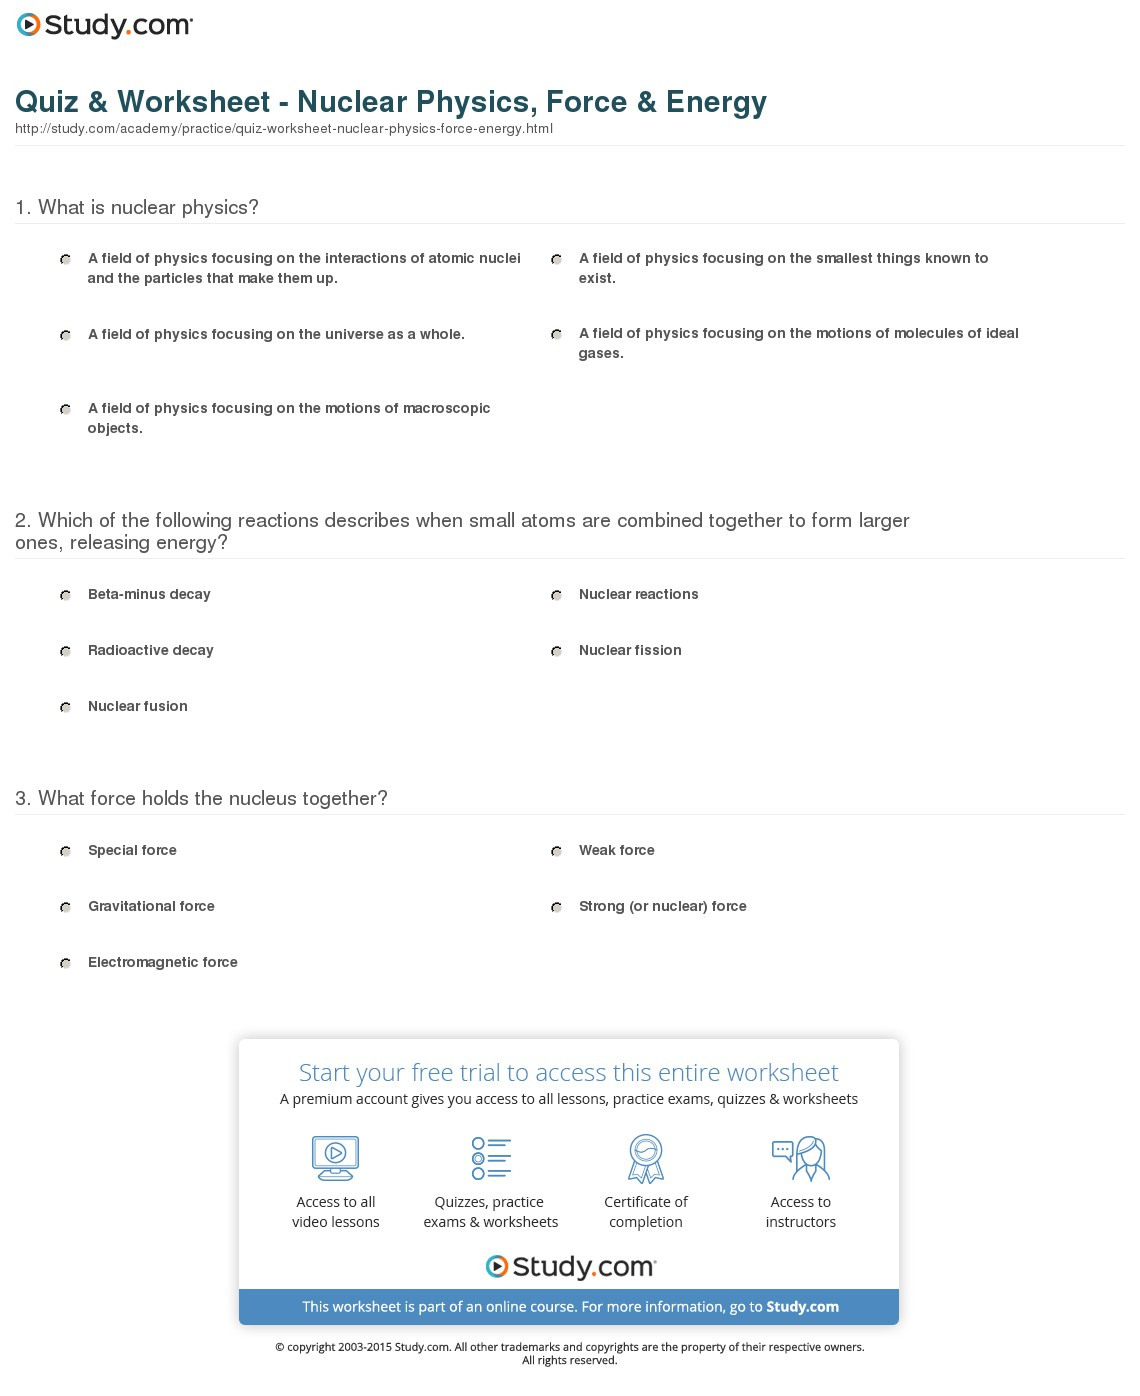 Quiz Worksheet Nuclear Physics Force Energy Study